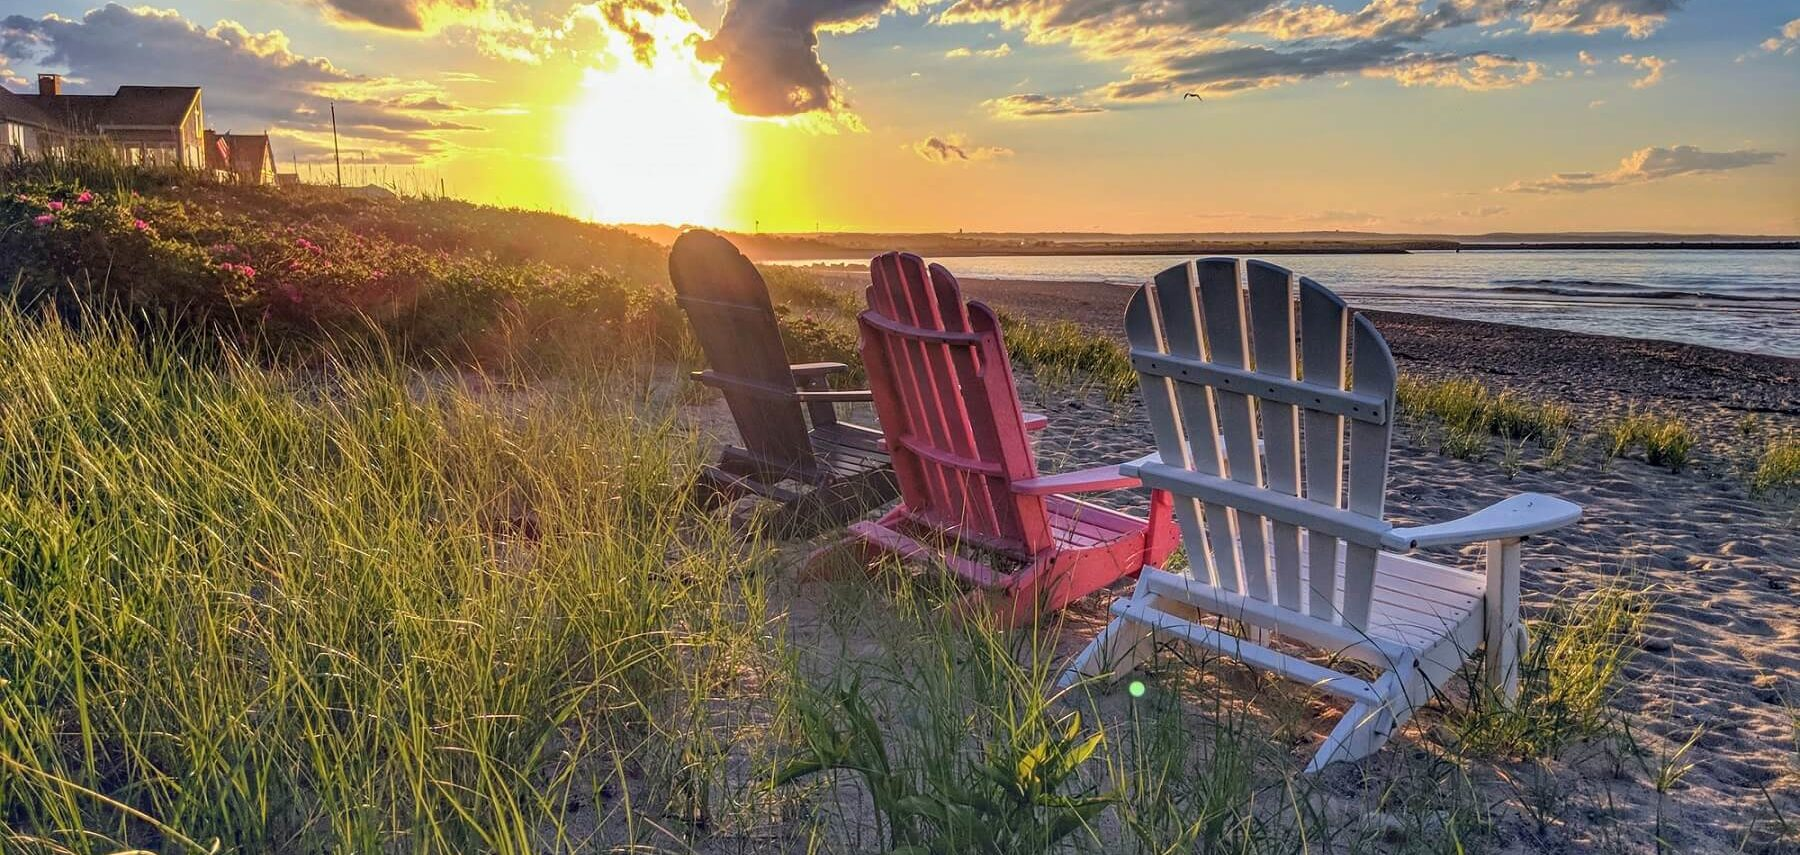 Adirondack chairs on a Cape Cod beach at sunset